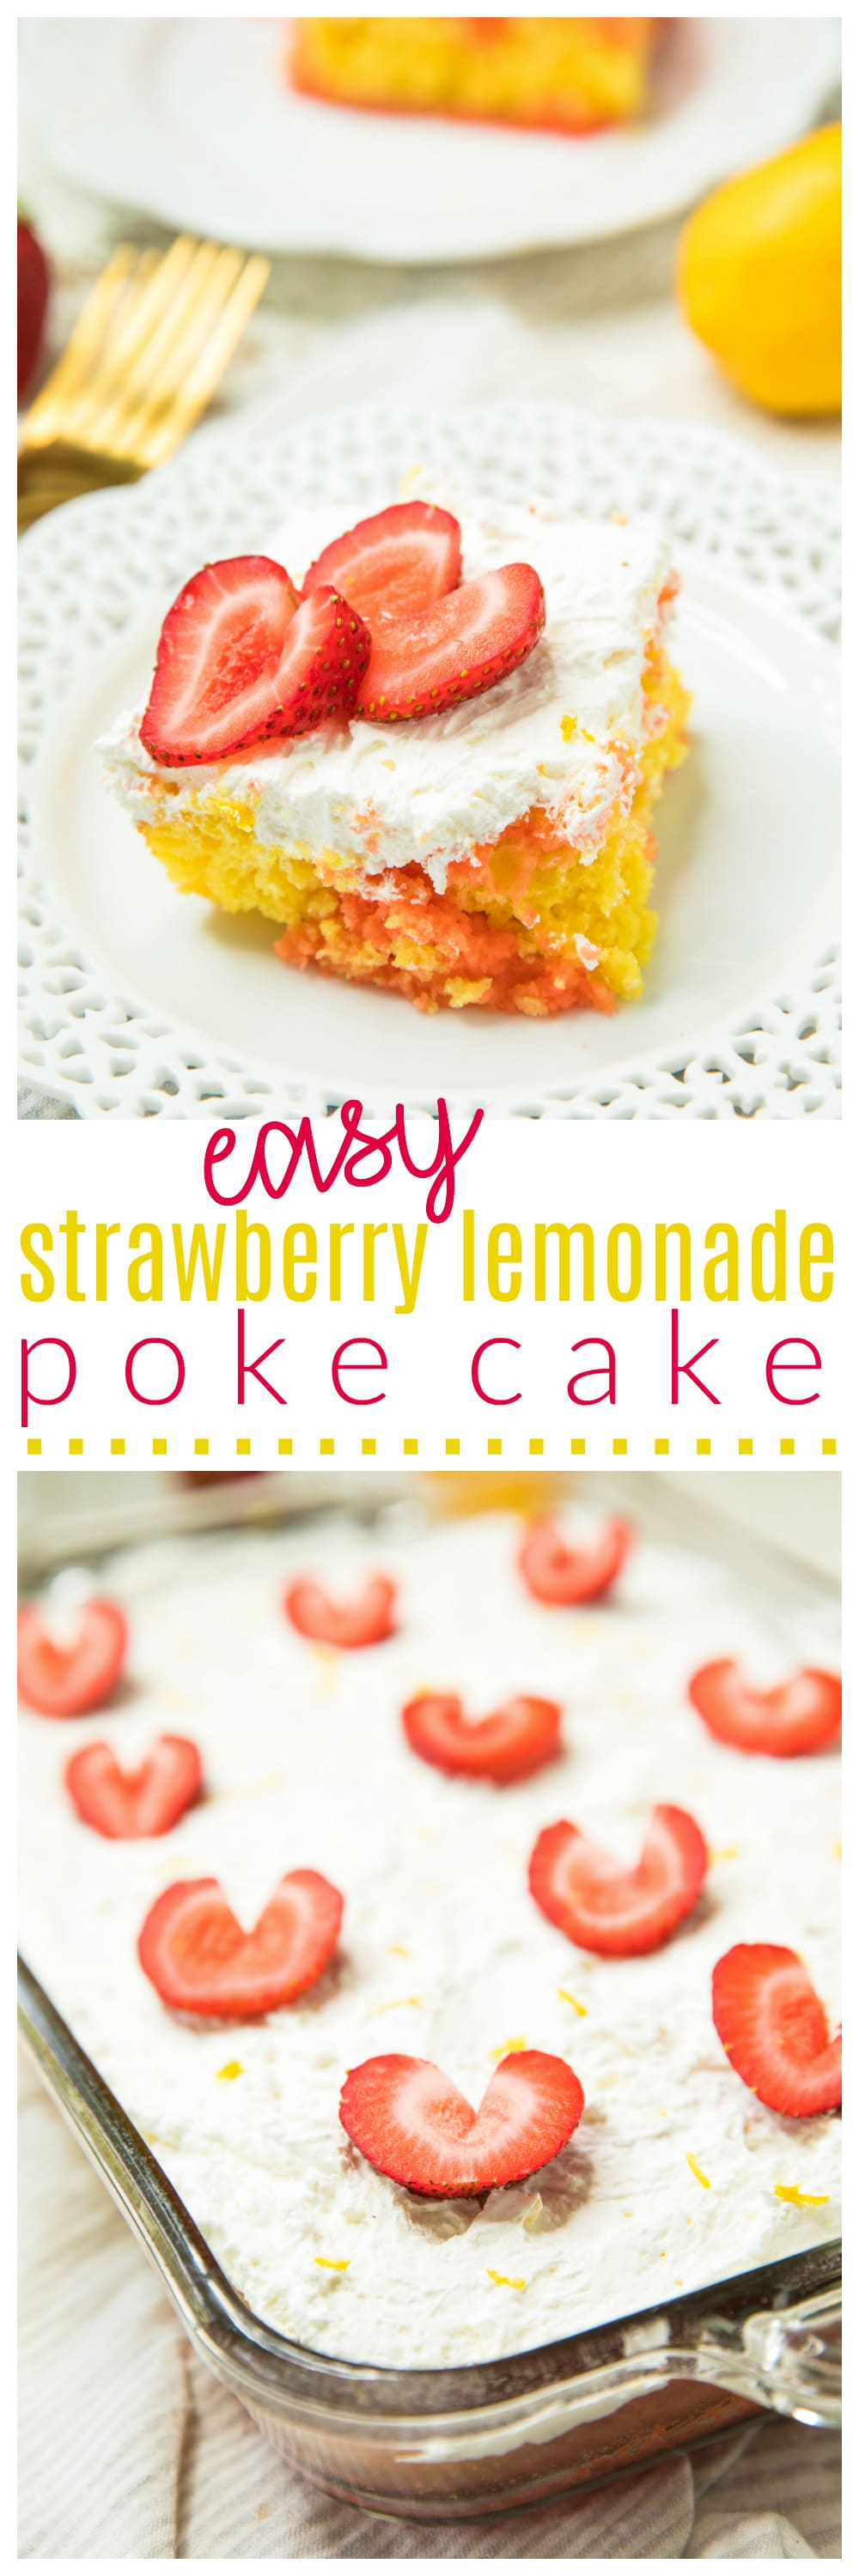 Poke cake is one of my all-time favorite desserts! With a combination of lemon and strawberry flavors, this Easy Strawberry Lemonade Poke Cake is sure to become one of your favorites too!